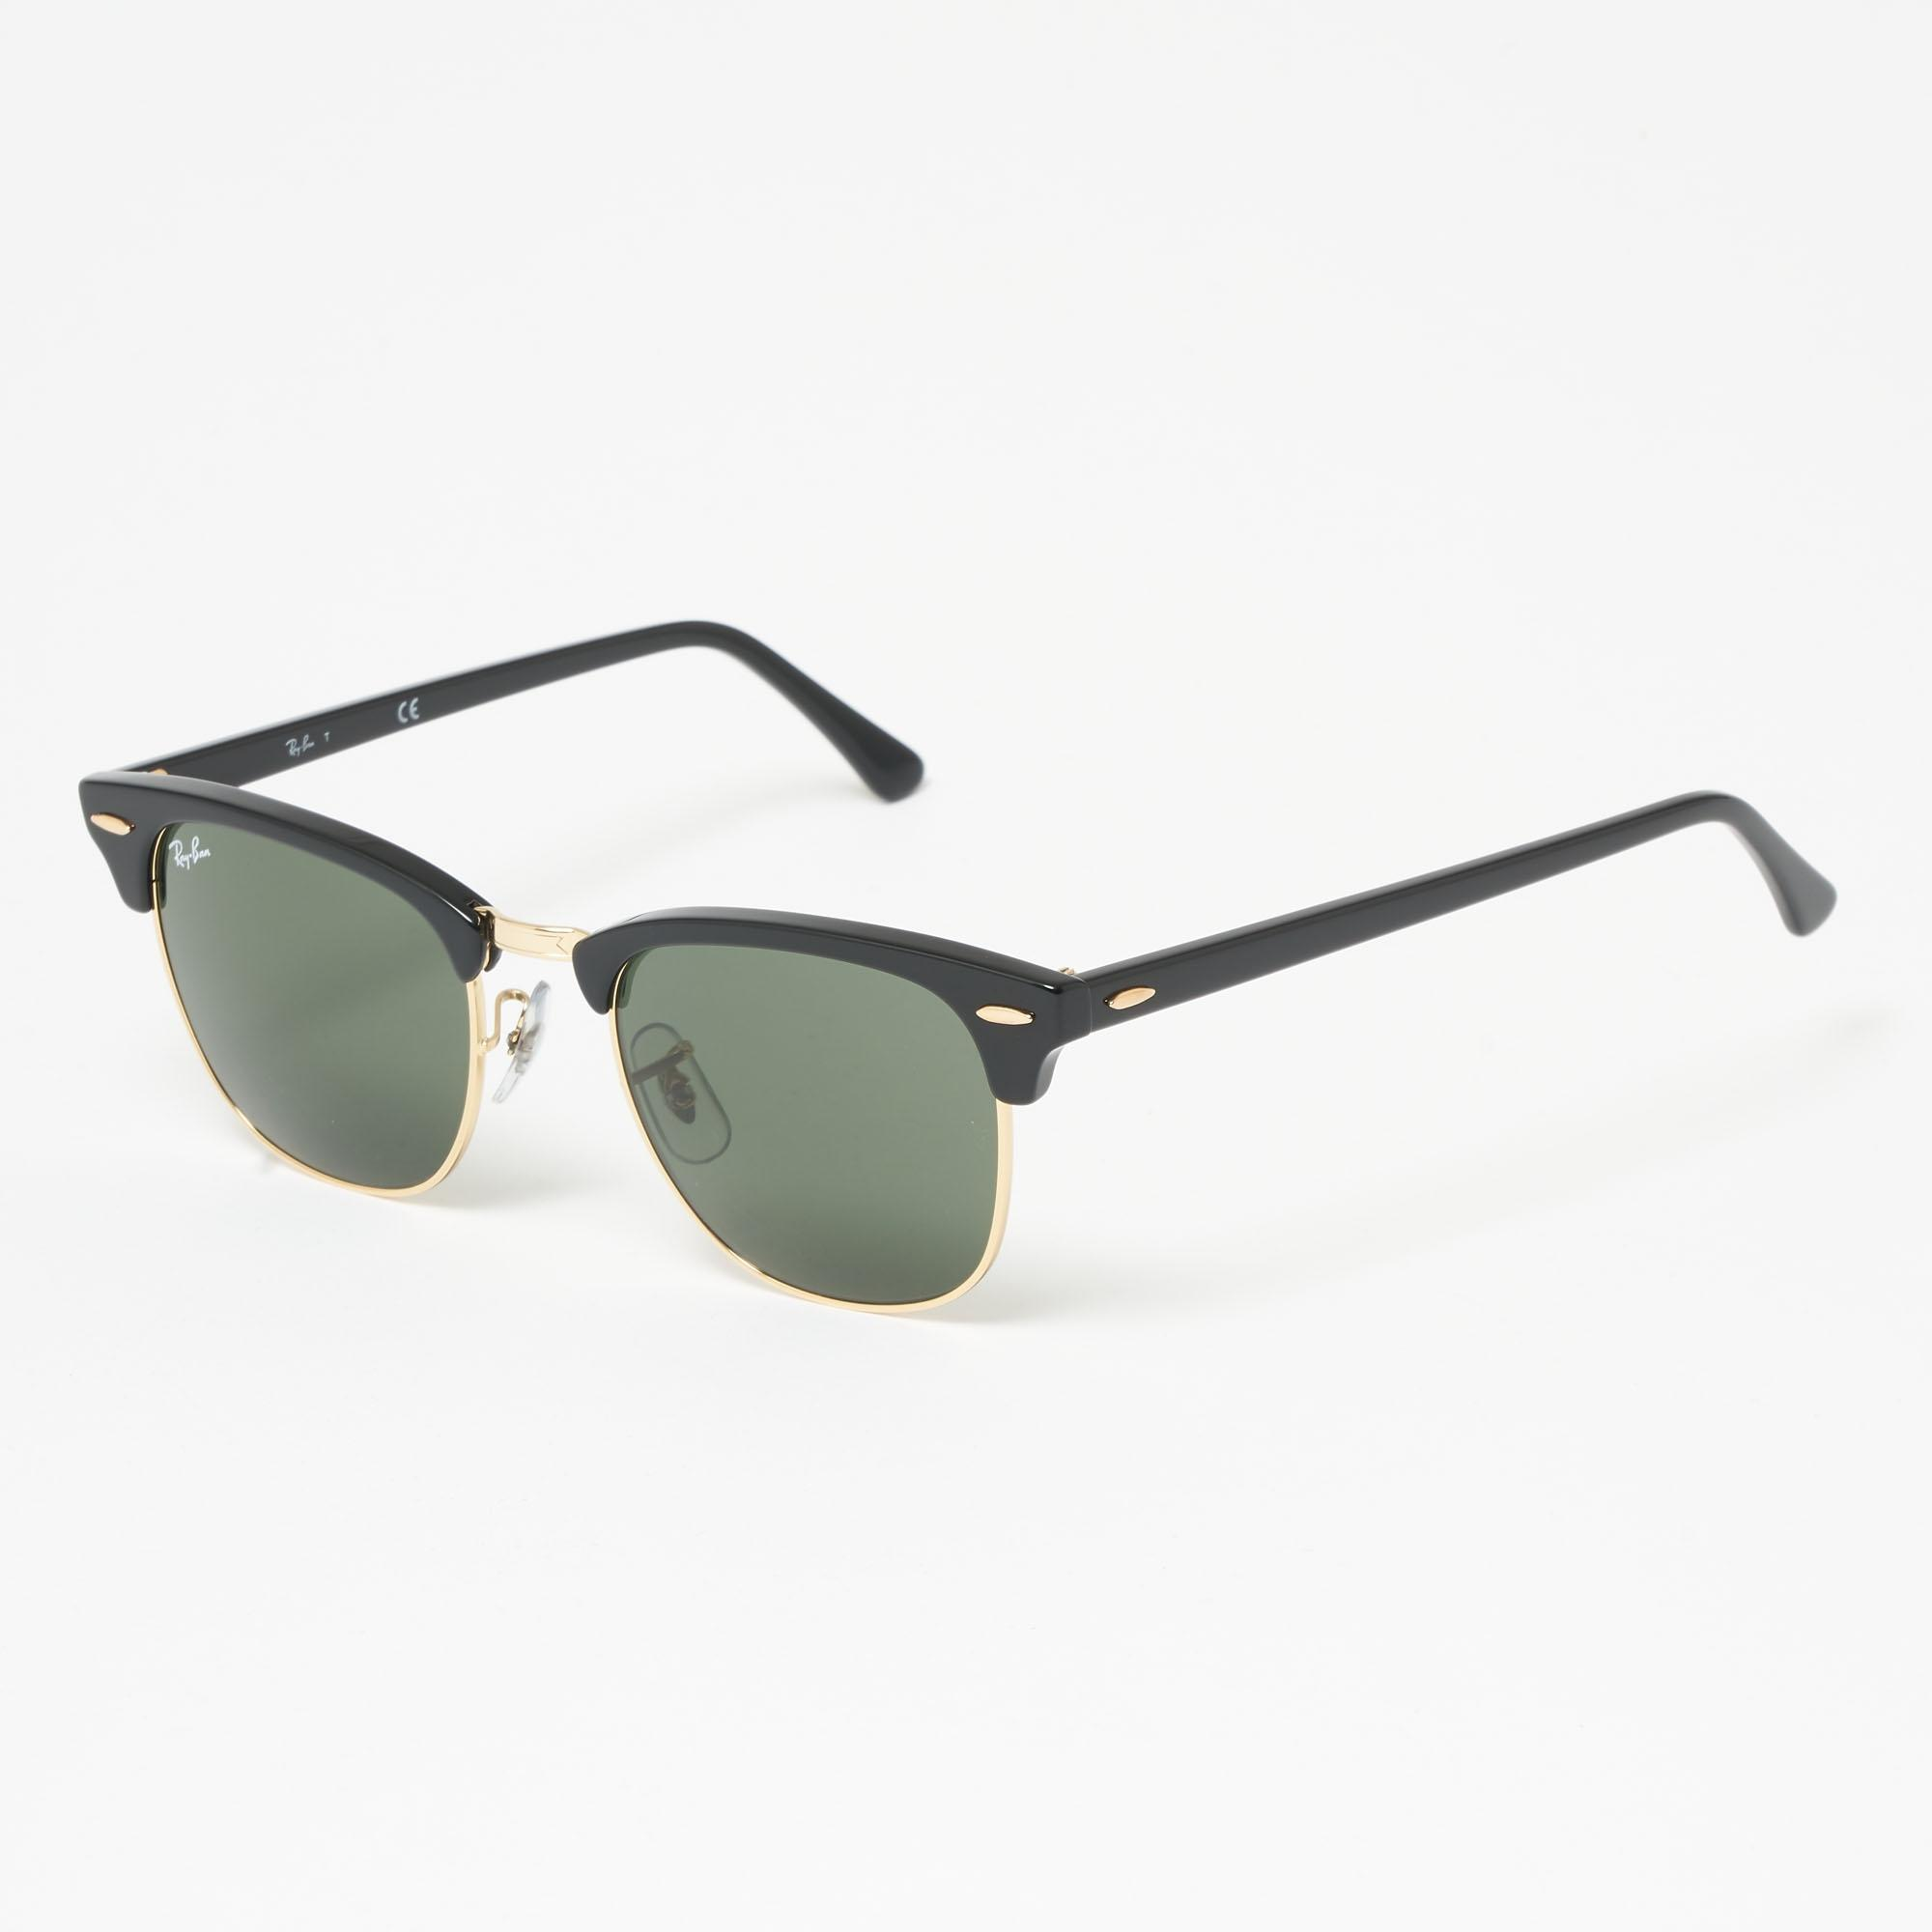 a7b6ca17e9 Ray-Ban. Men s Black Clubround Classic Sunglasses - Green Classic G-15  Lenses